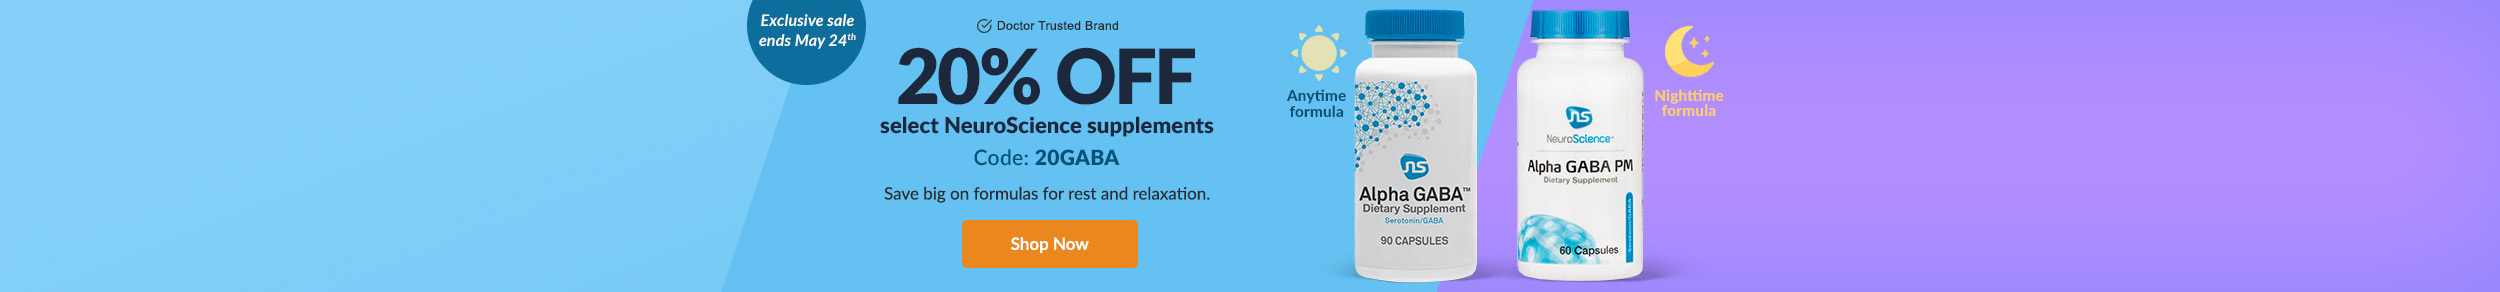 Exclusive sale ends May 24th! Doctor Trusted Brand: 20% OFF select NeuroScience supplements. Code: 20GABA. Save big on formulas for rest and relaxation. SHOP NOW!